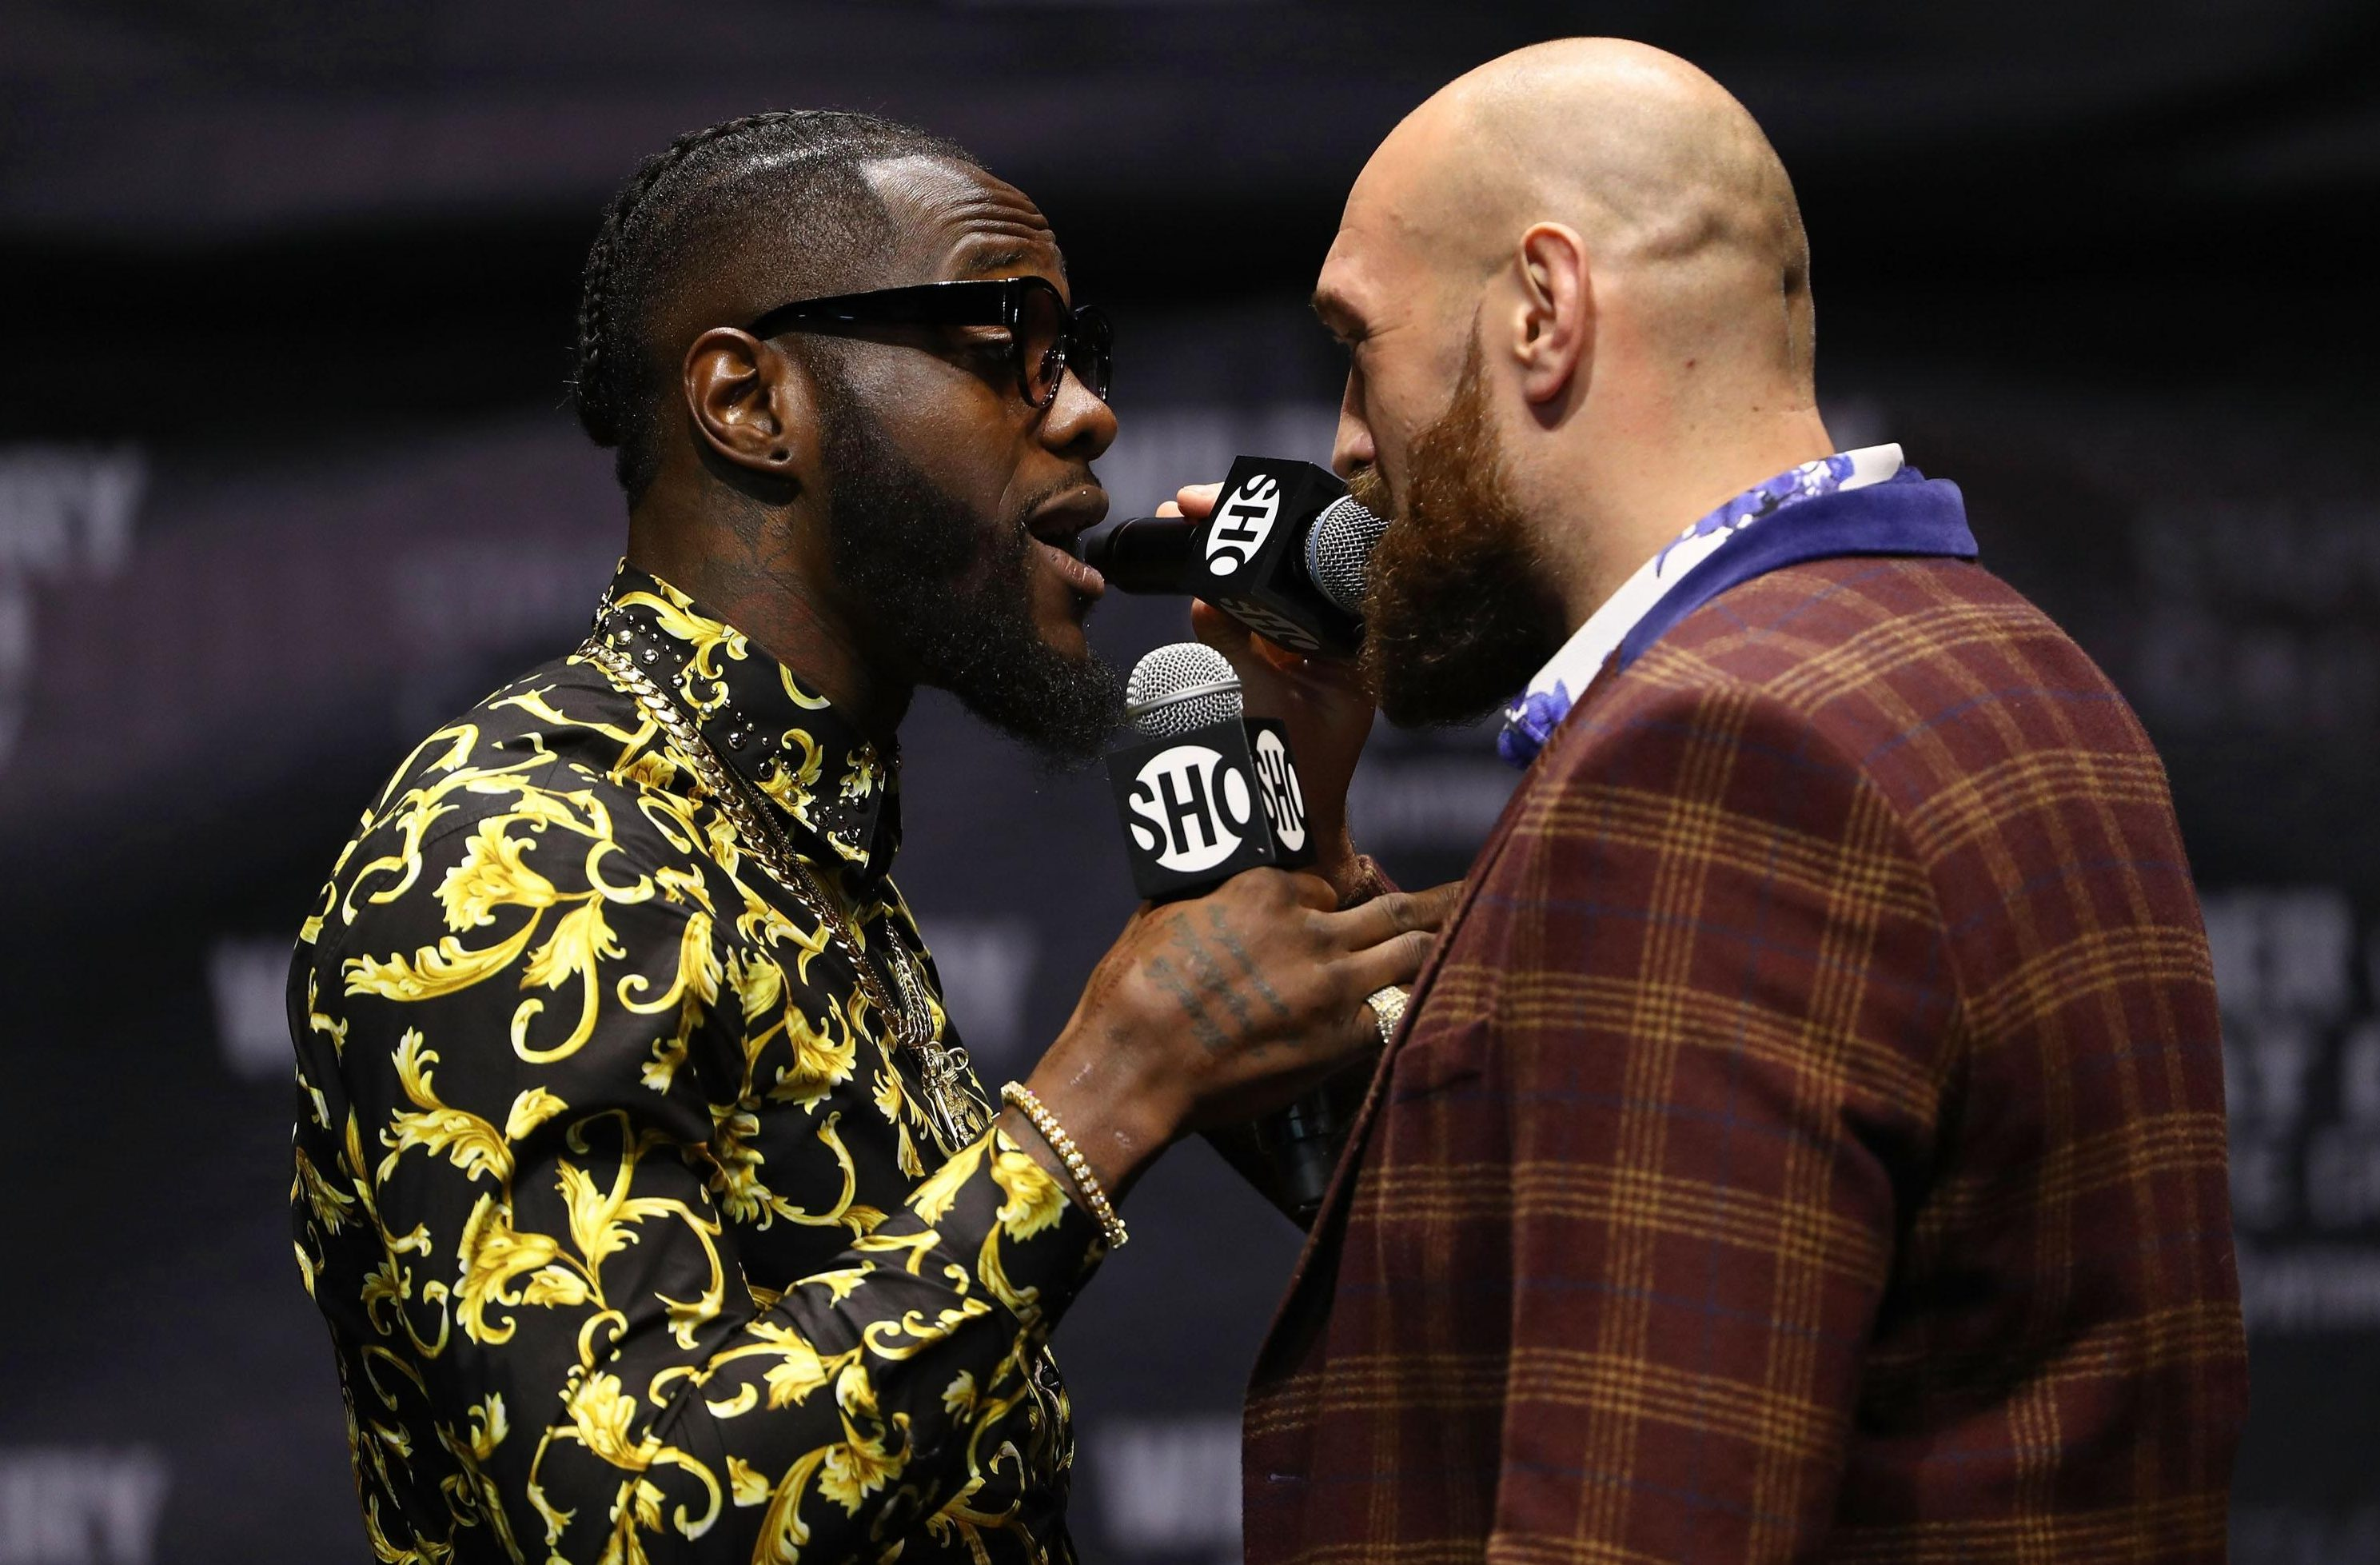 Wilder and Fury take each other on next month for the WBC belt